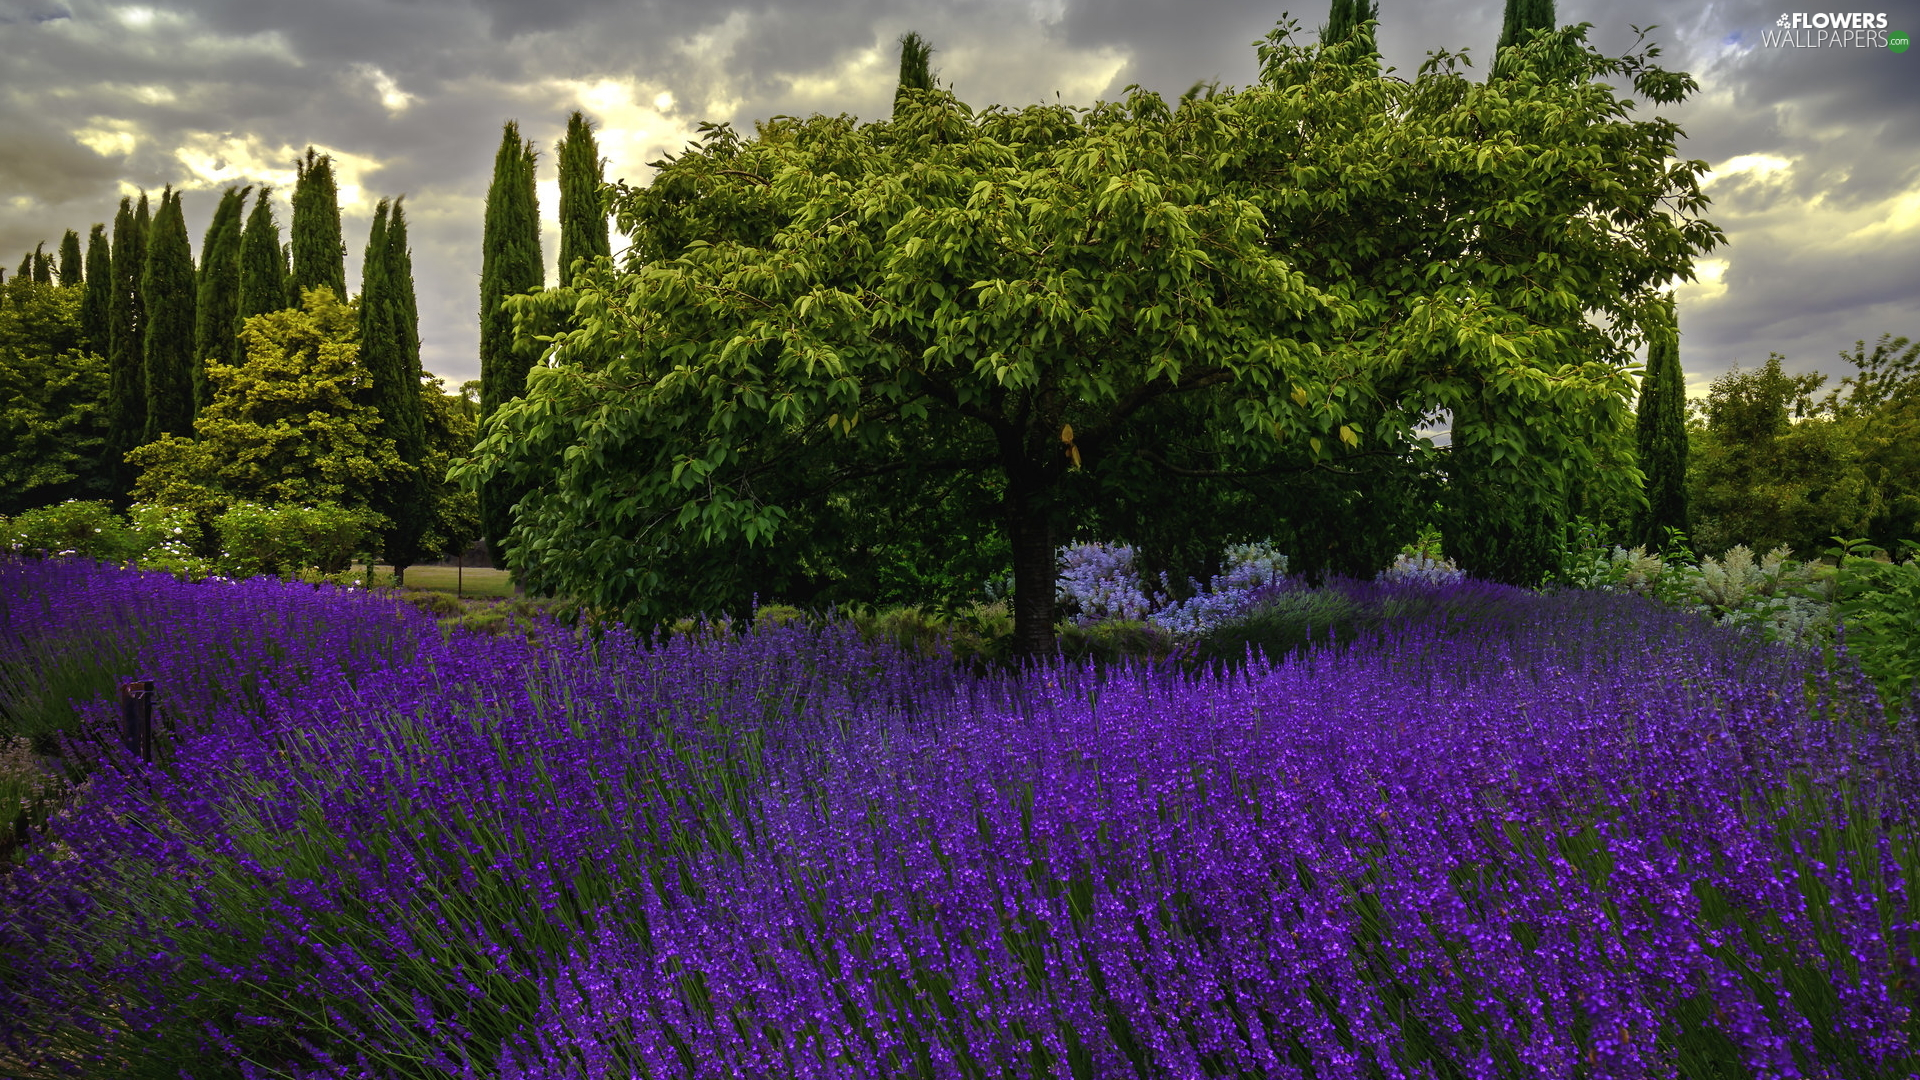 trees, lavender, clouds, viewes